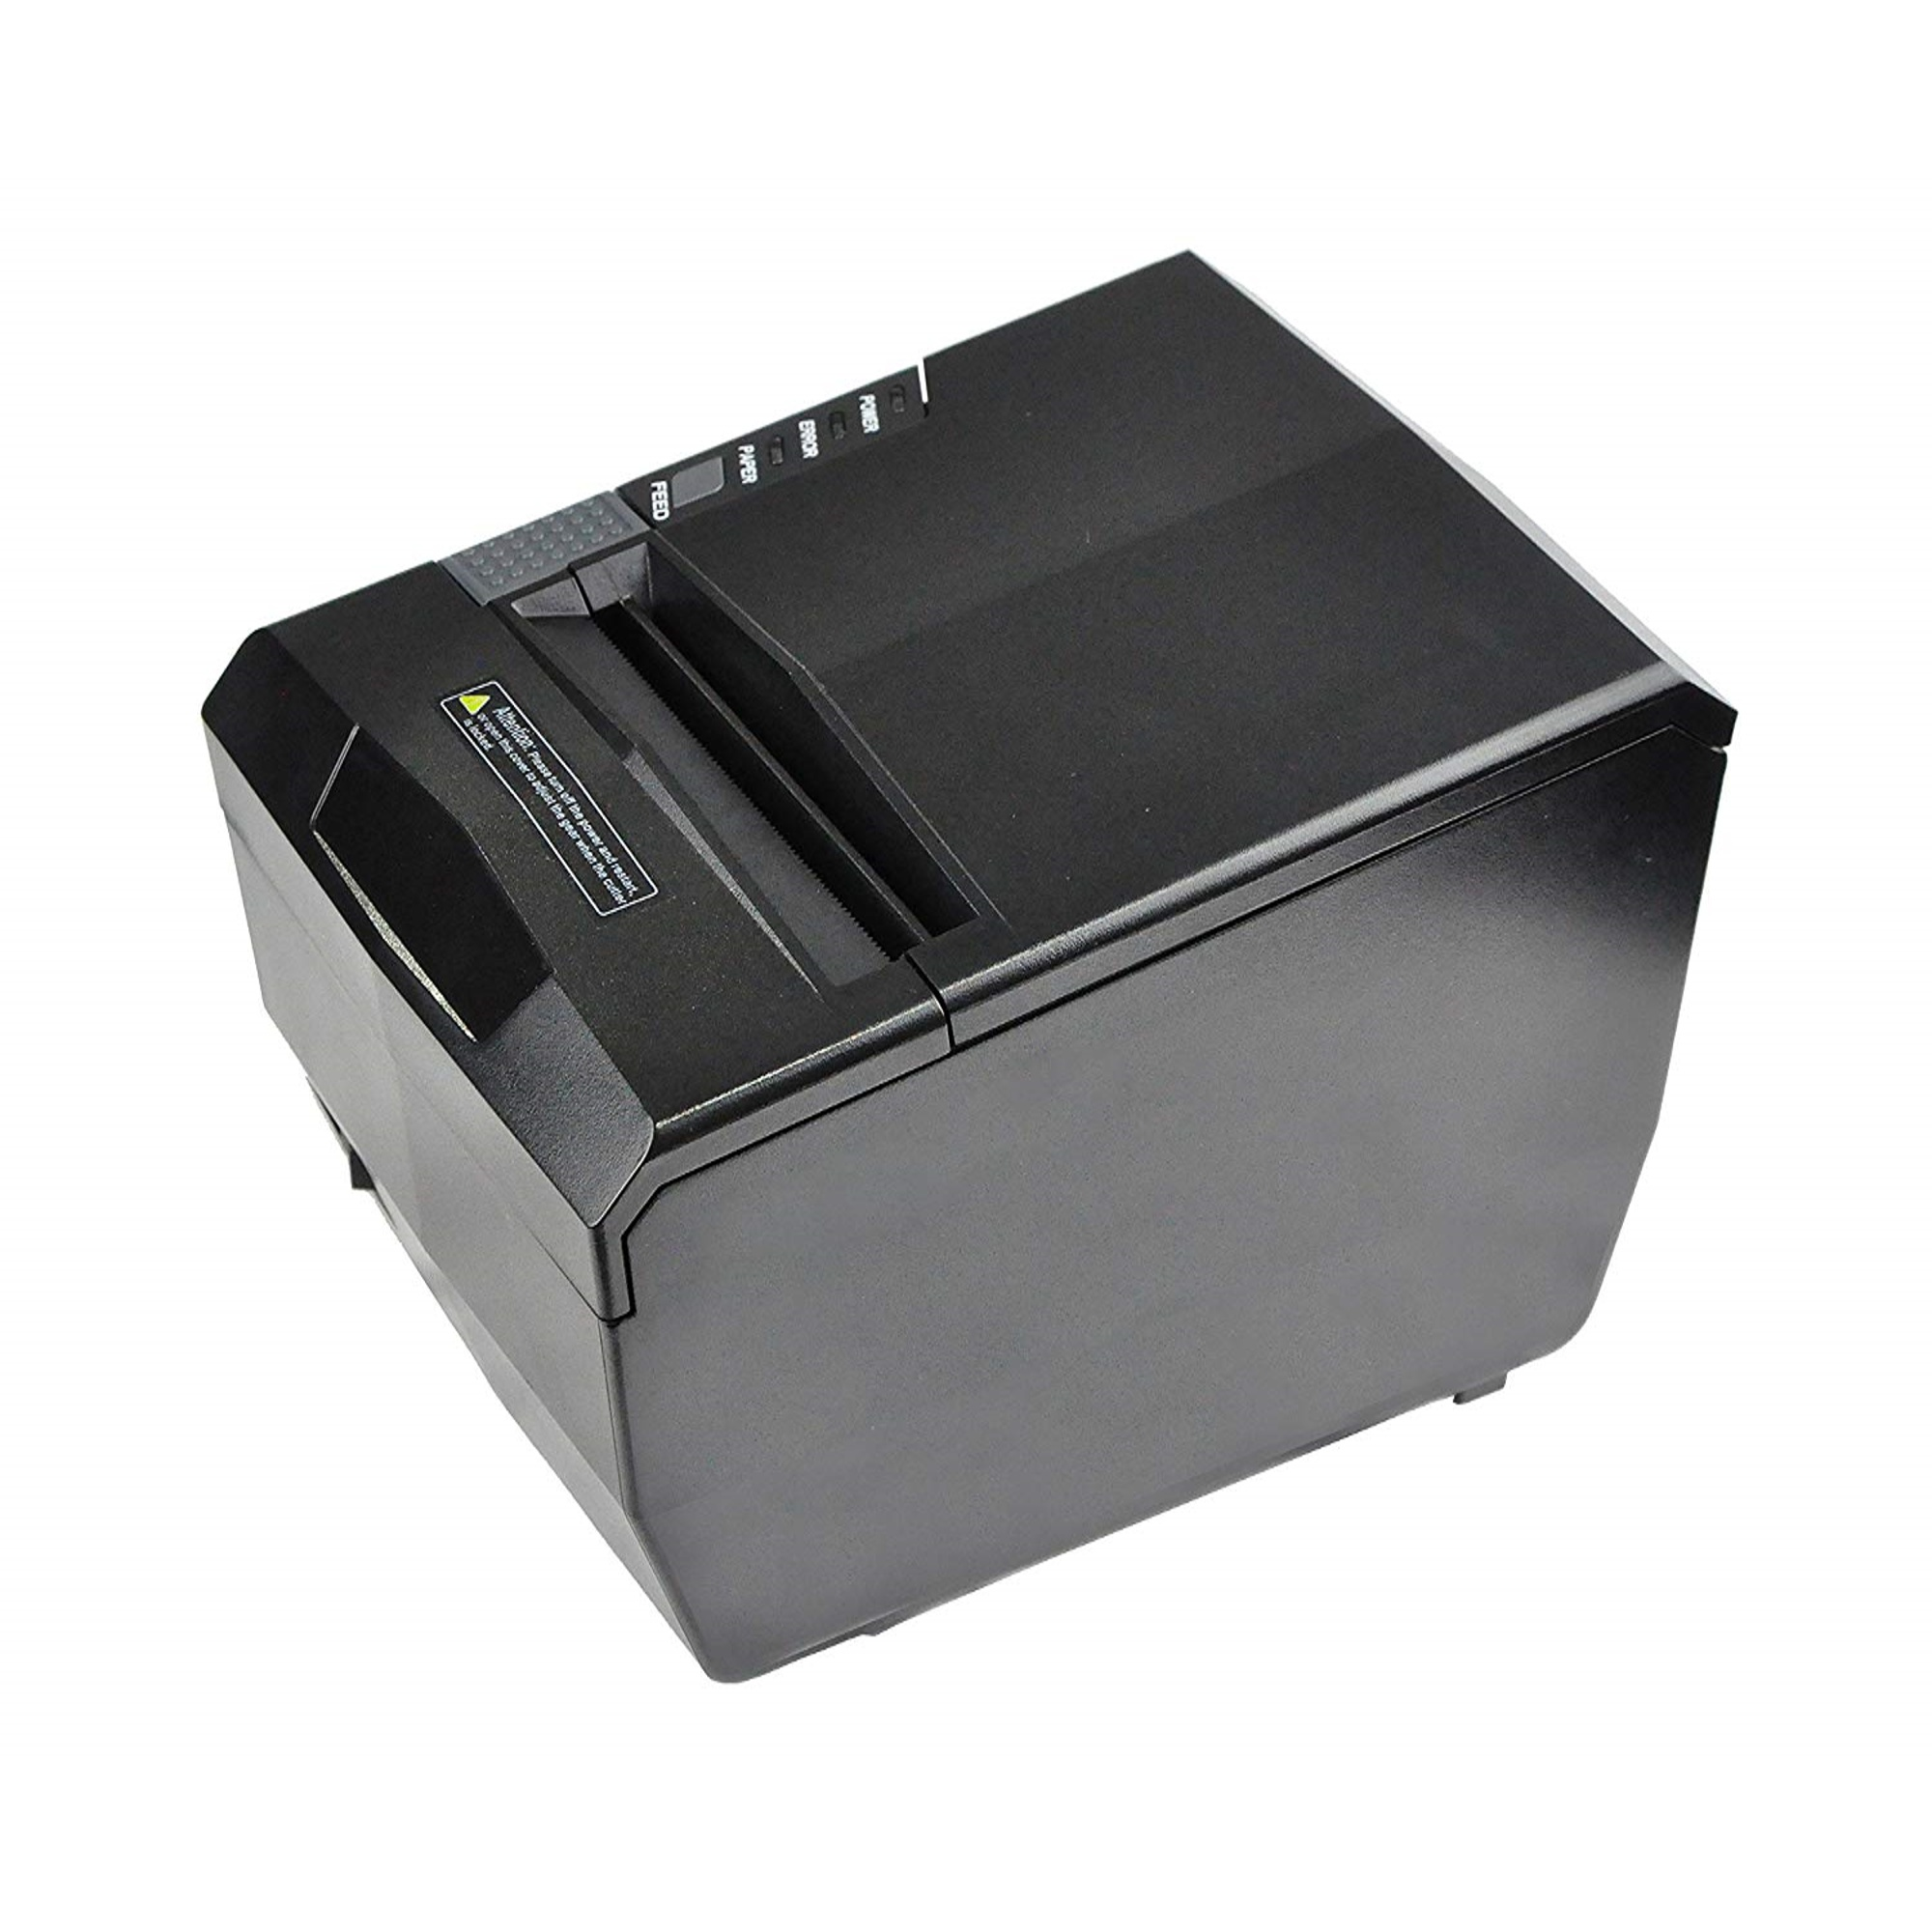 Arkscan AS80USE Receipt Printer